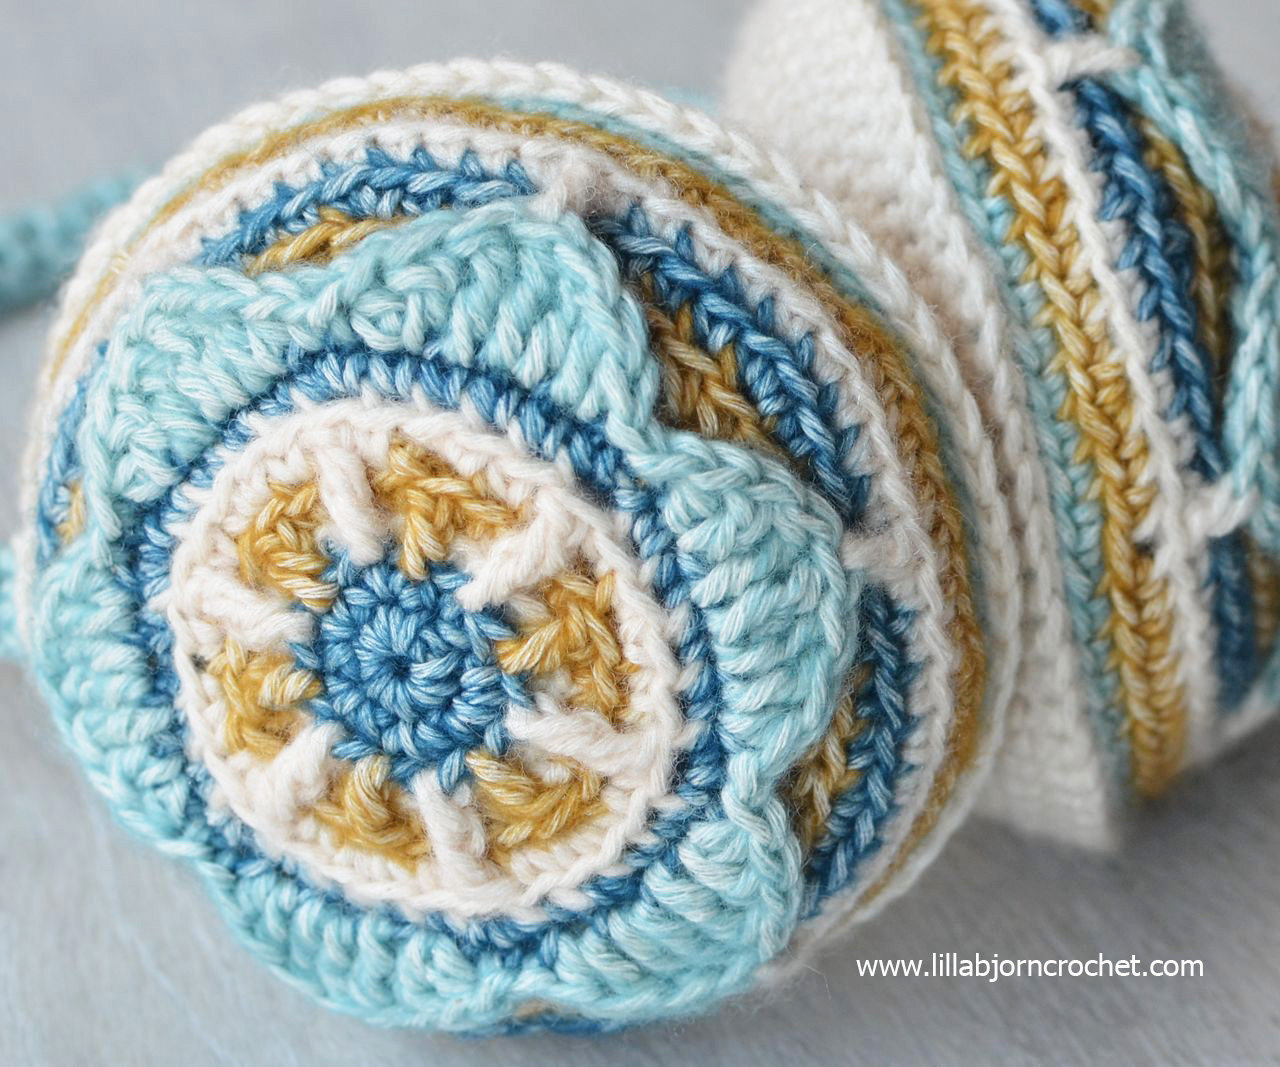 Crocheted ear muffs with flower. Designed by Lilla Bjorn Crochet - overlay crochet